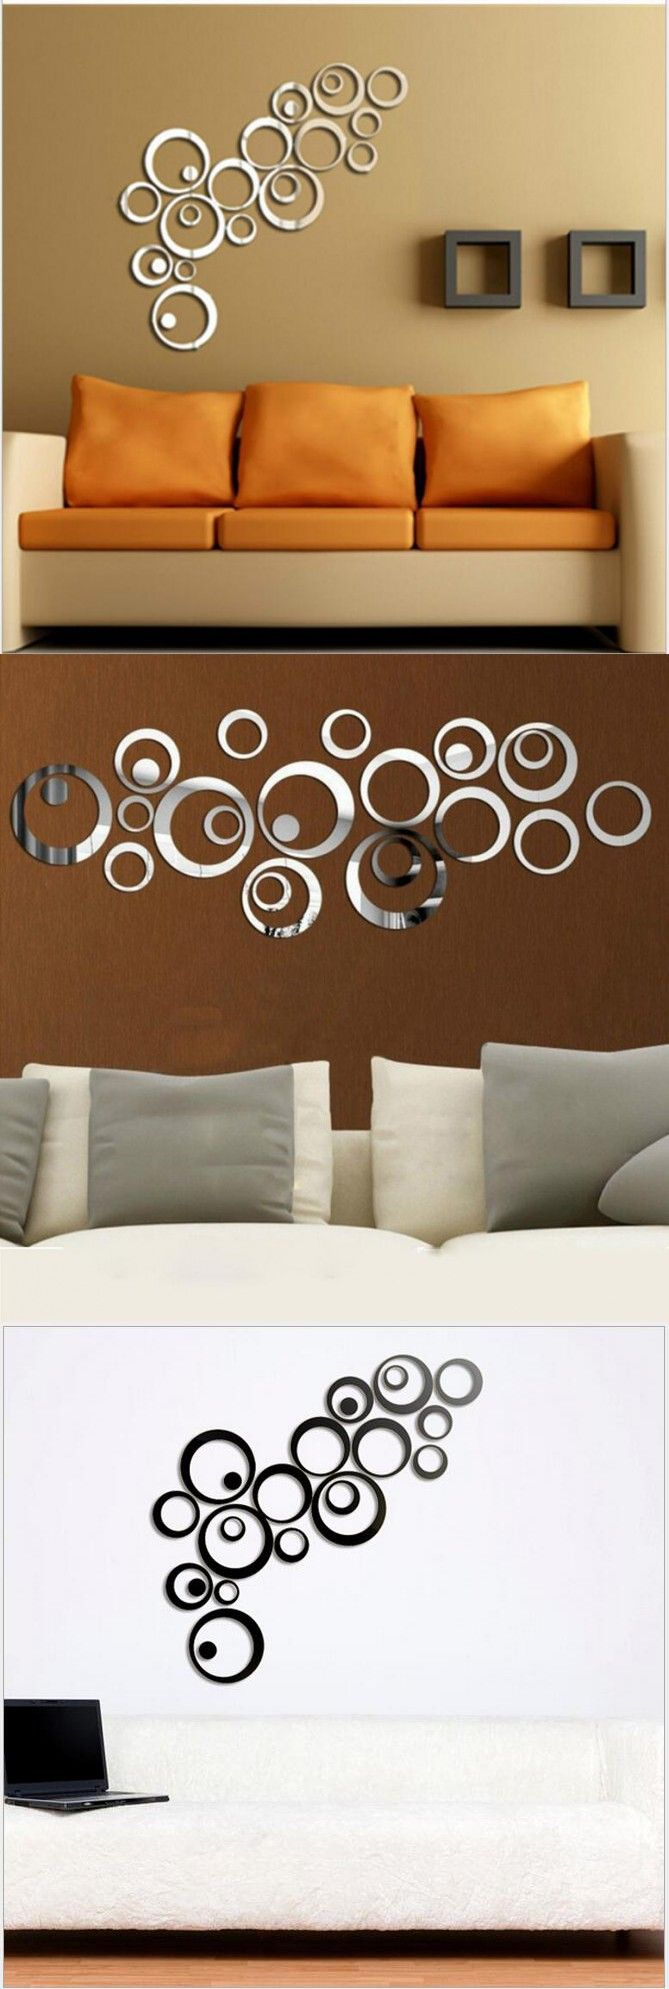 54 best cricut images on pinterest vinyl decals cricut vinyl acrylic wall sticker luxury 3d circles mirror wall sticker home decor bell cool wall stickers home decoration